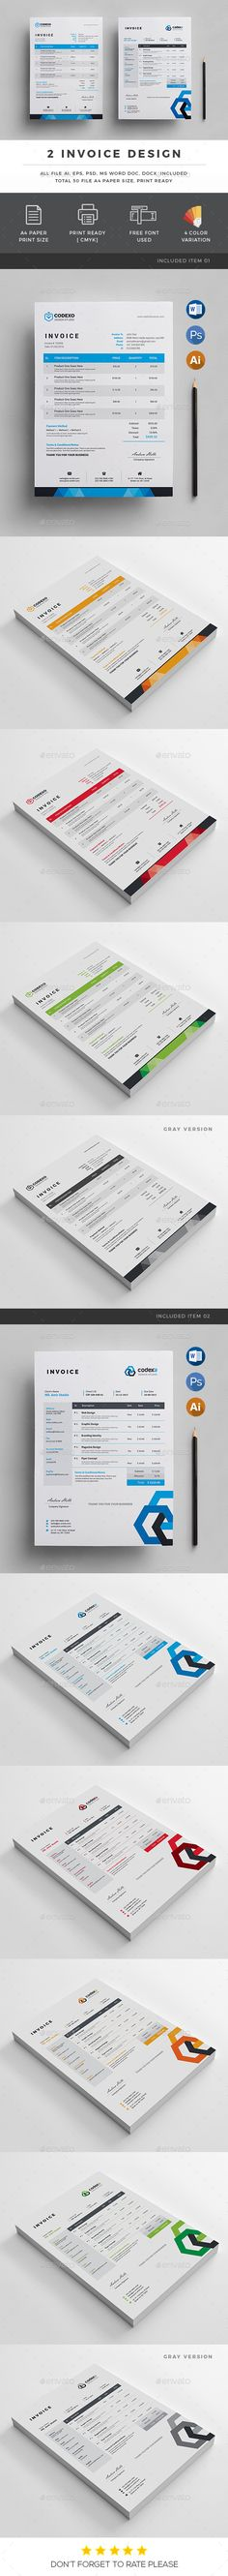 Invoice Template Download, Print and Stationery - invoice print